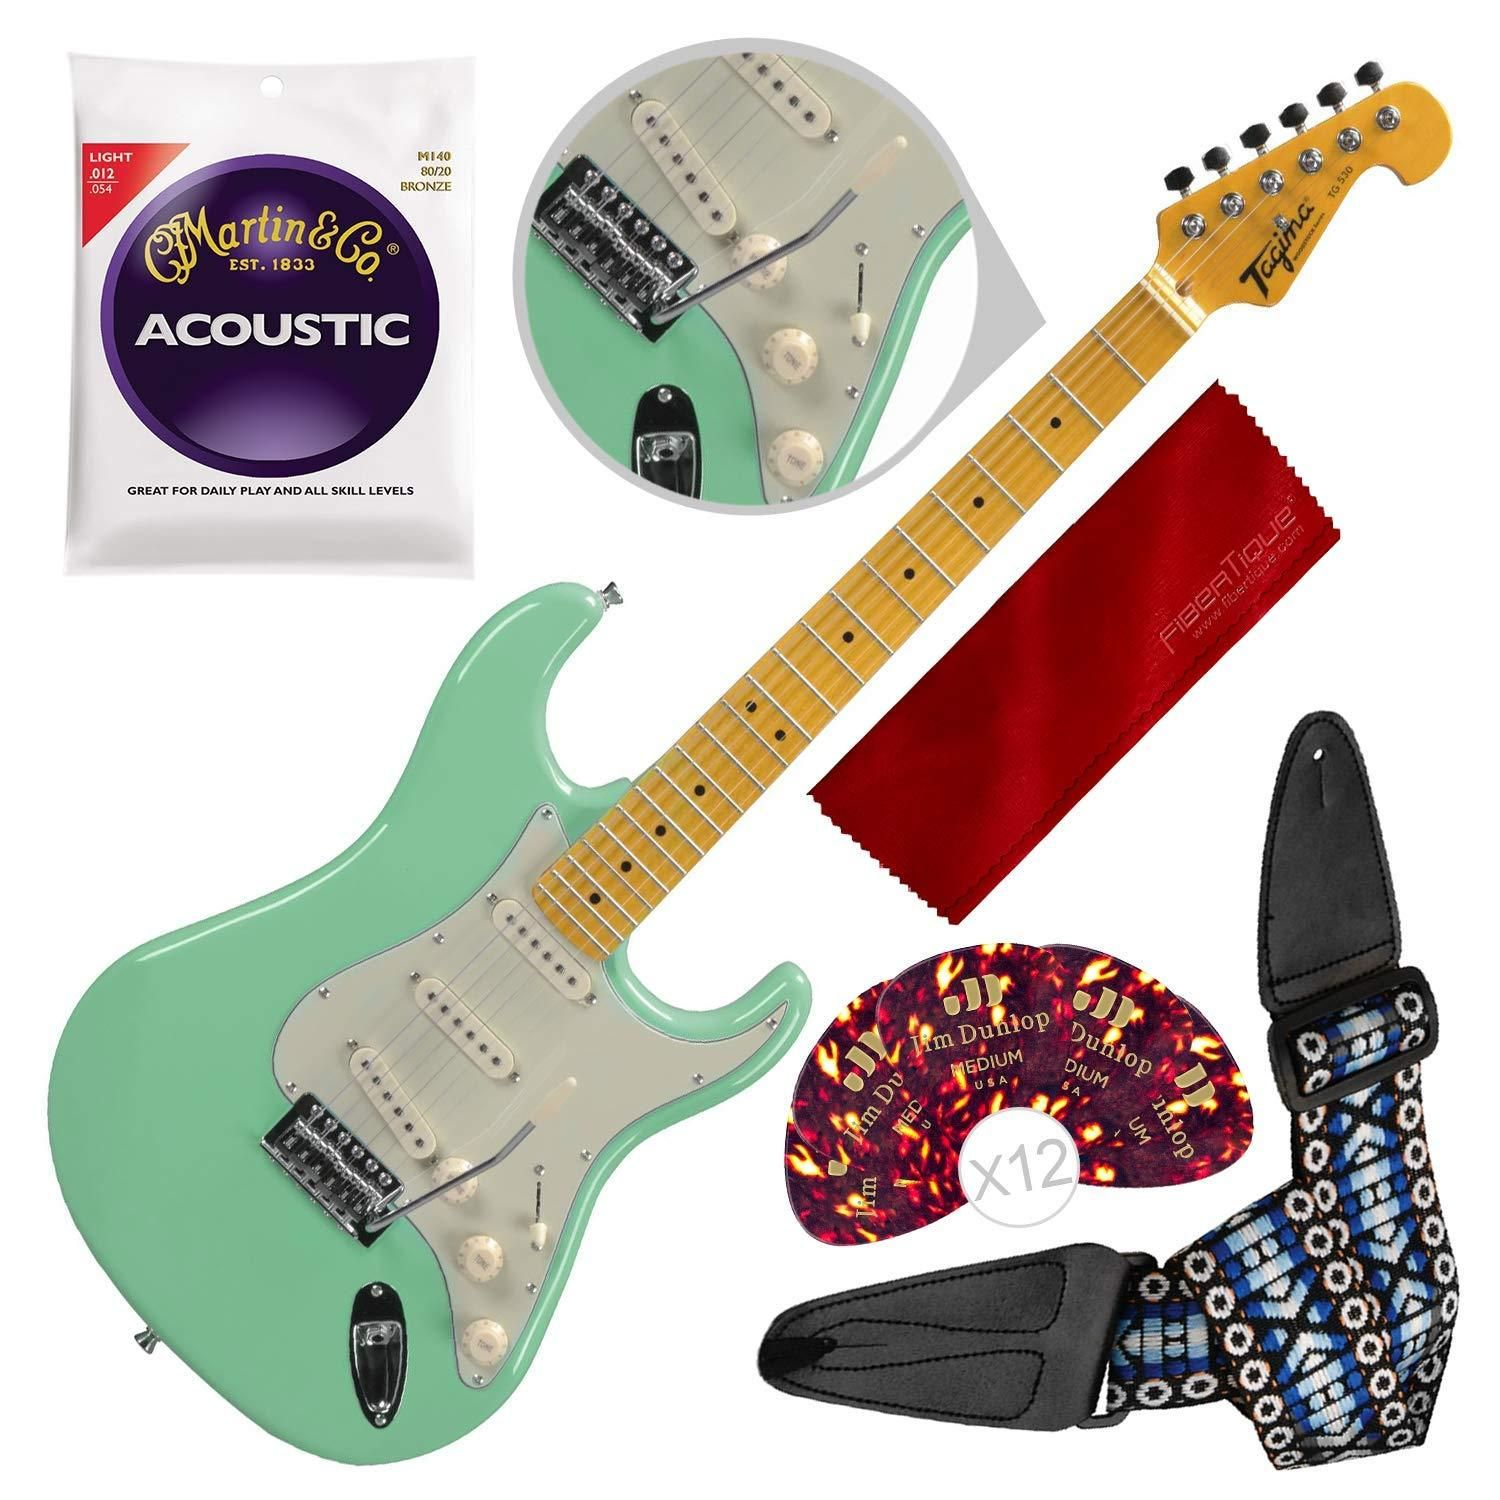 Tagima Tg530 Sg Woodstock Series Strat Style Electric Guitar Surf Green With Guitar Strap And Accessory Bundle Electric Guitar Guitar Guitar Strap